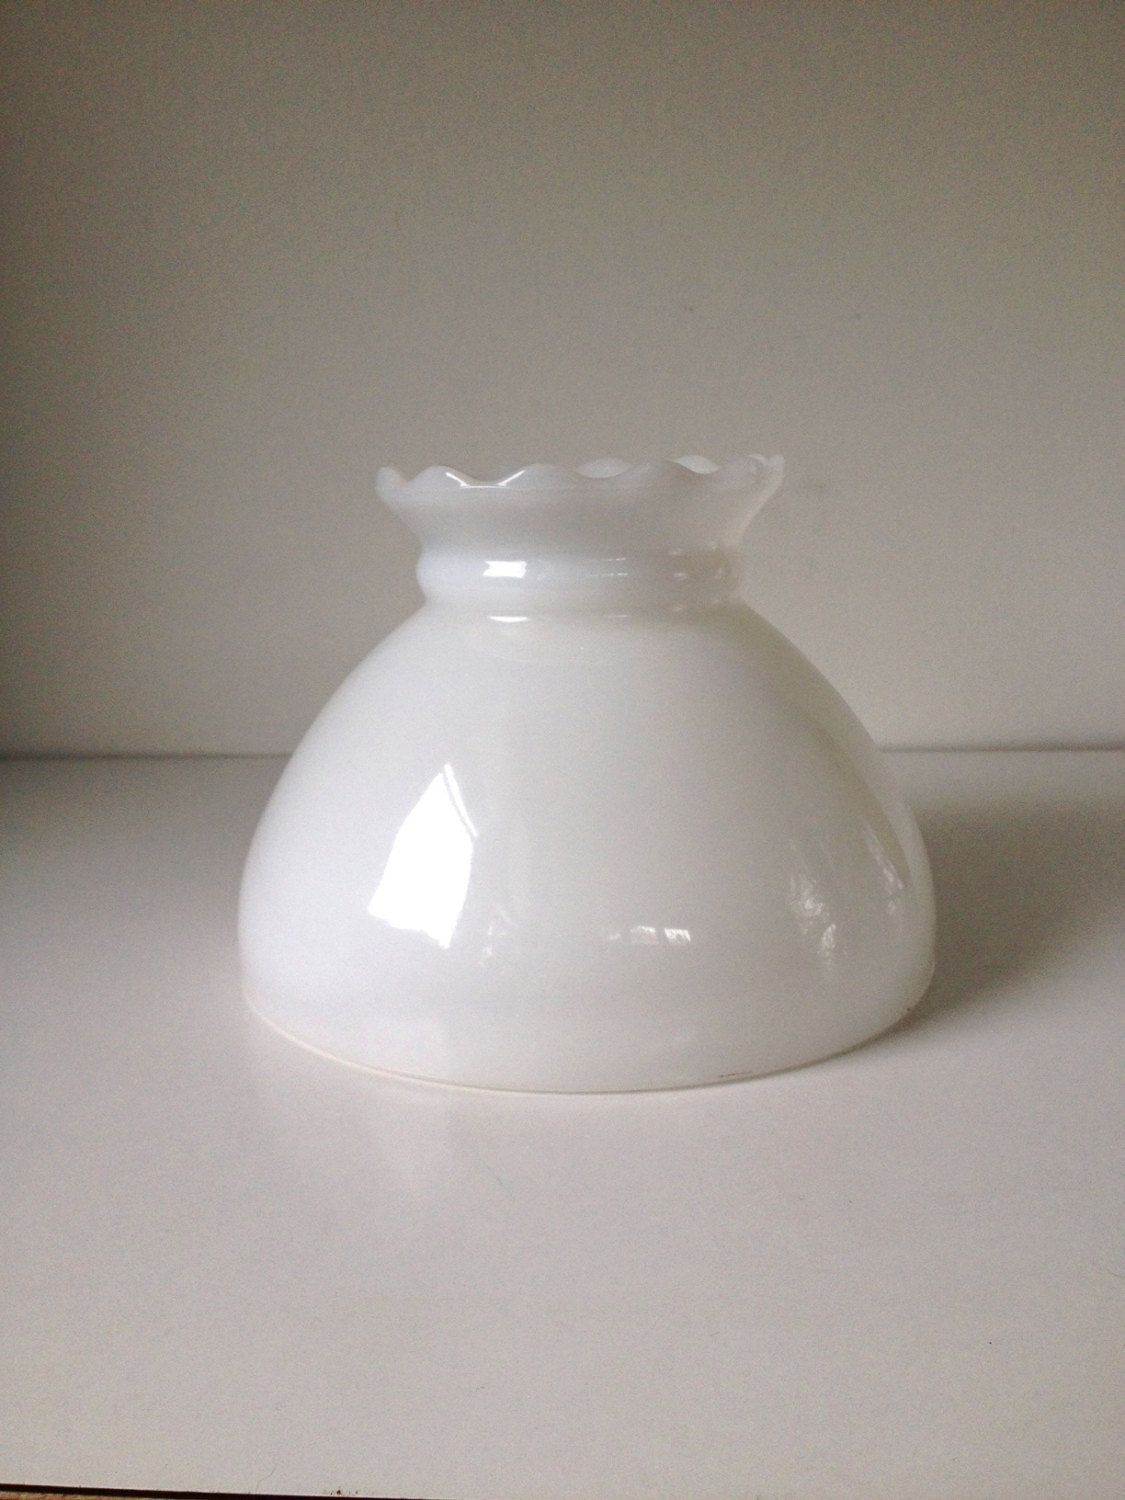 Student lamp shade white 8 fitting vintage glass lamp shade white student lamp shade 8 fitting vintage glass lamp shade replacement by sarahloveslamps on etsy aloadofball Choice Image